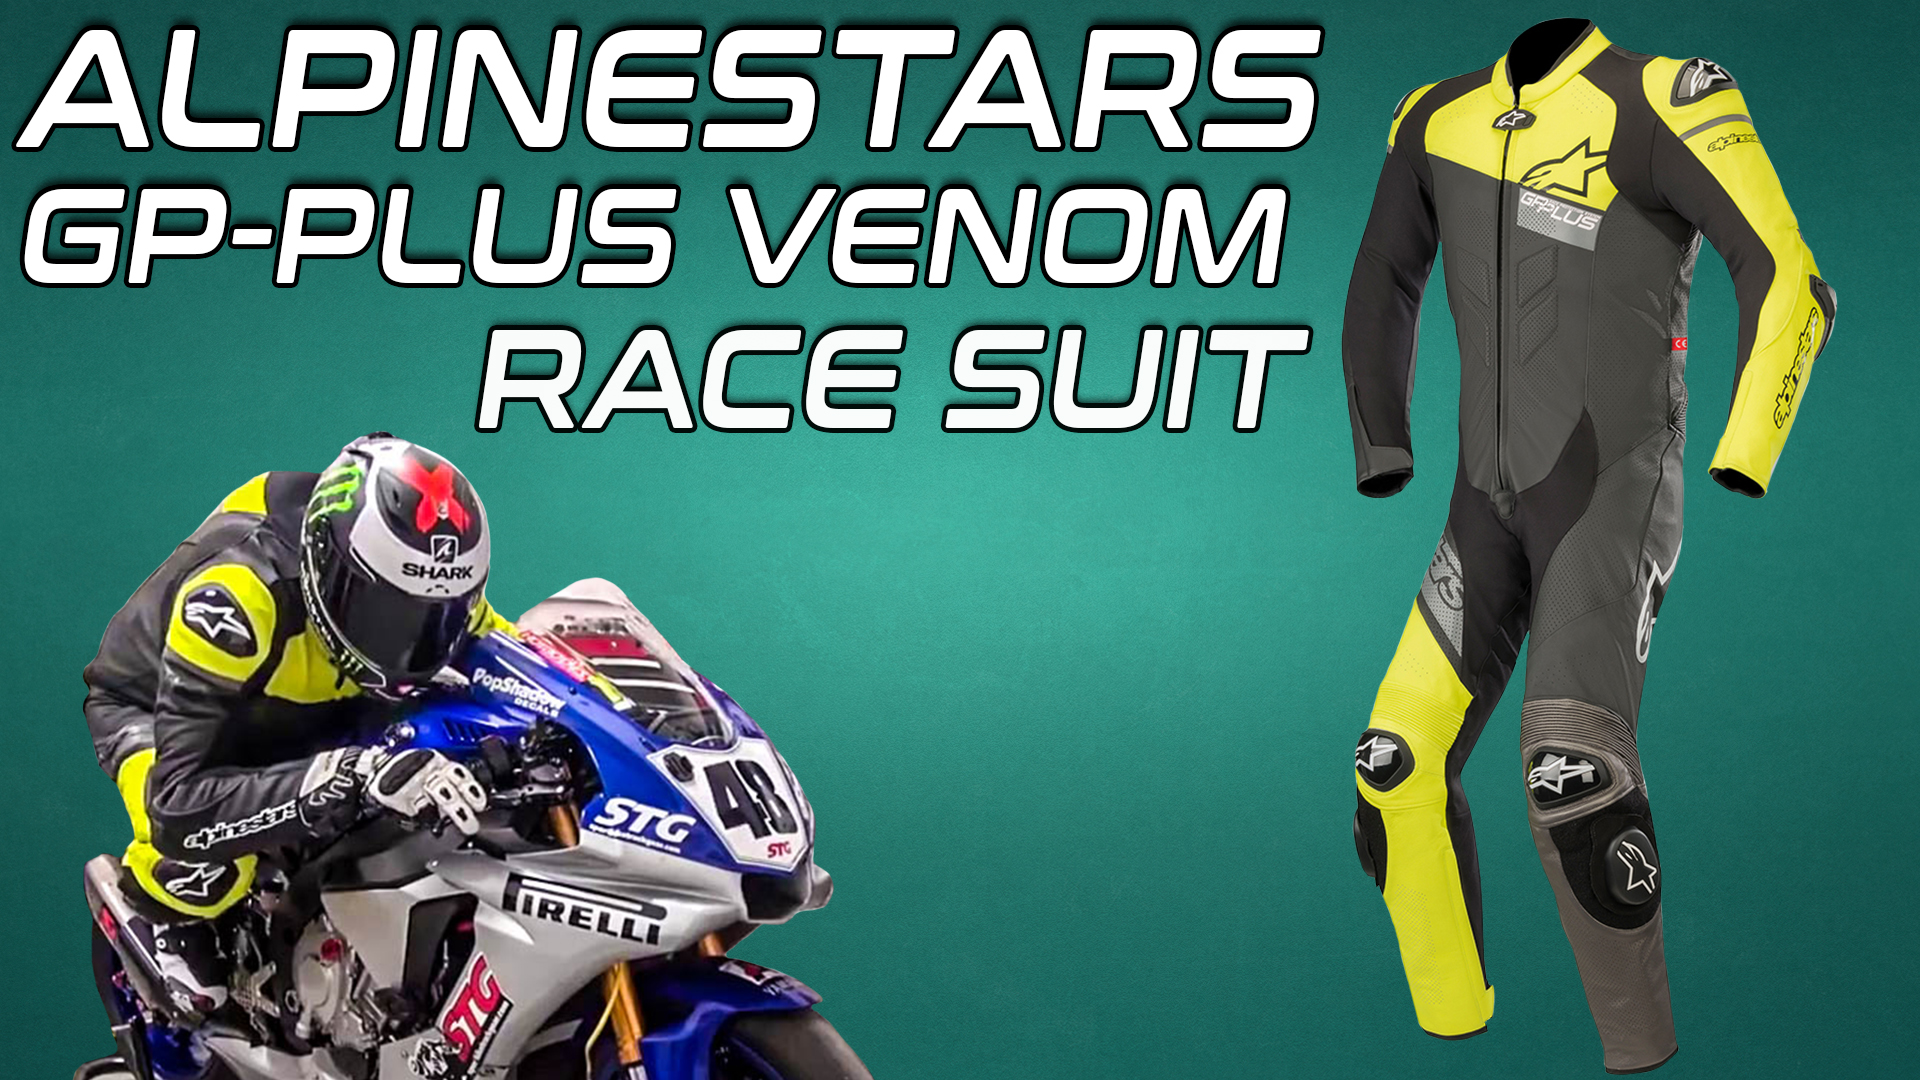 Alpinestars GP Plus Venom Race Suit